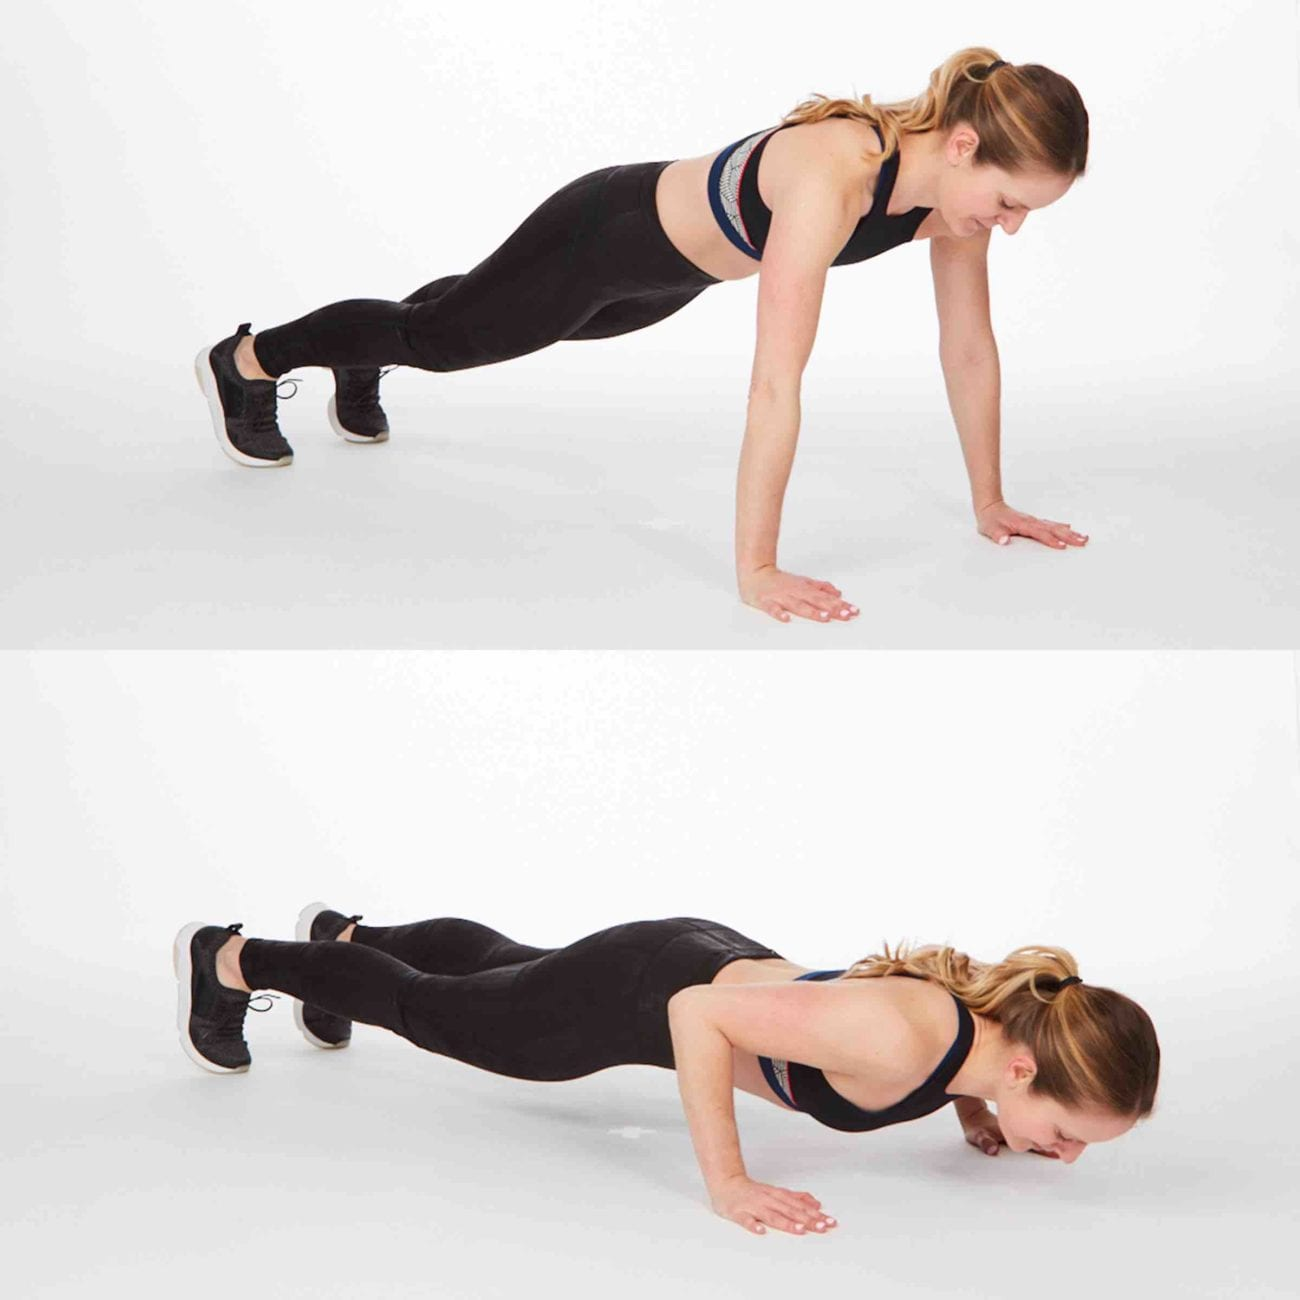 Stay fit while watching your favorite shows with these at-home plank workouts created by in-home and online personal trainer Jennifer Fidder.